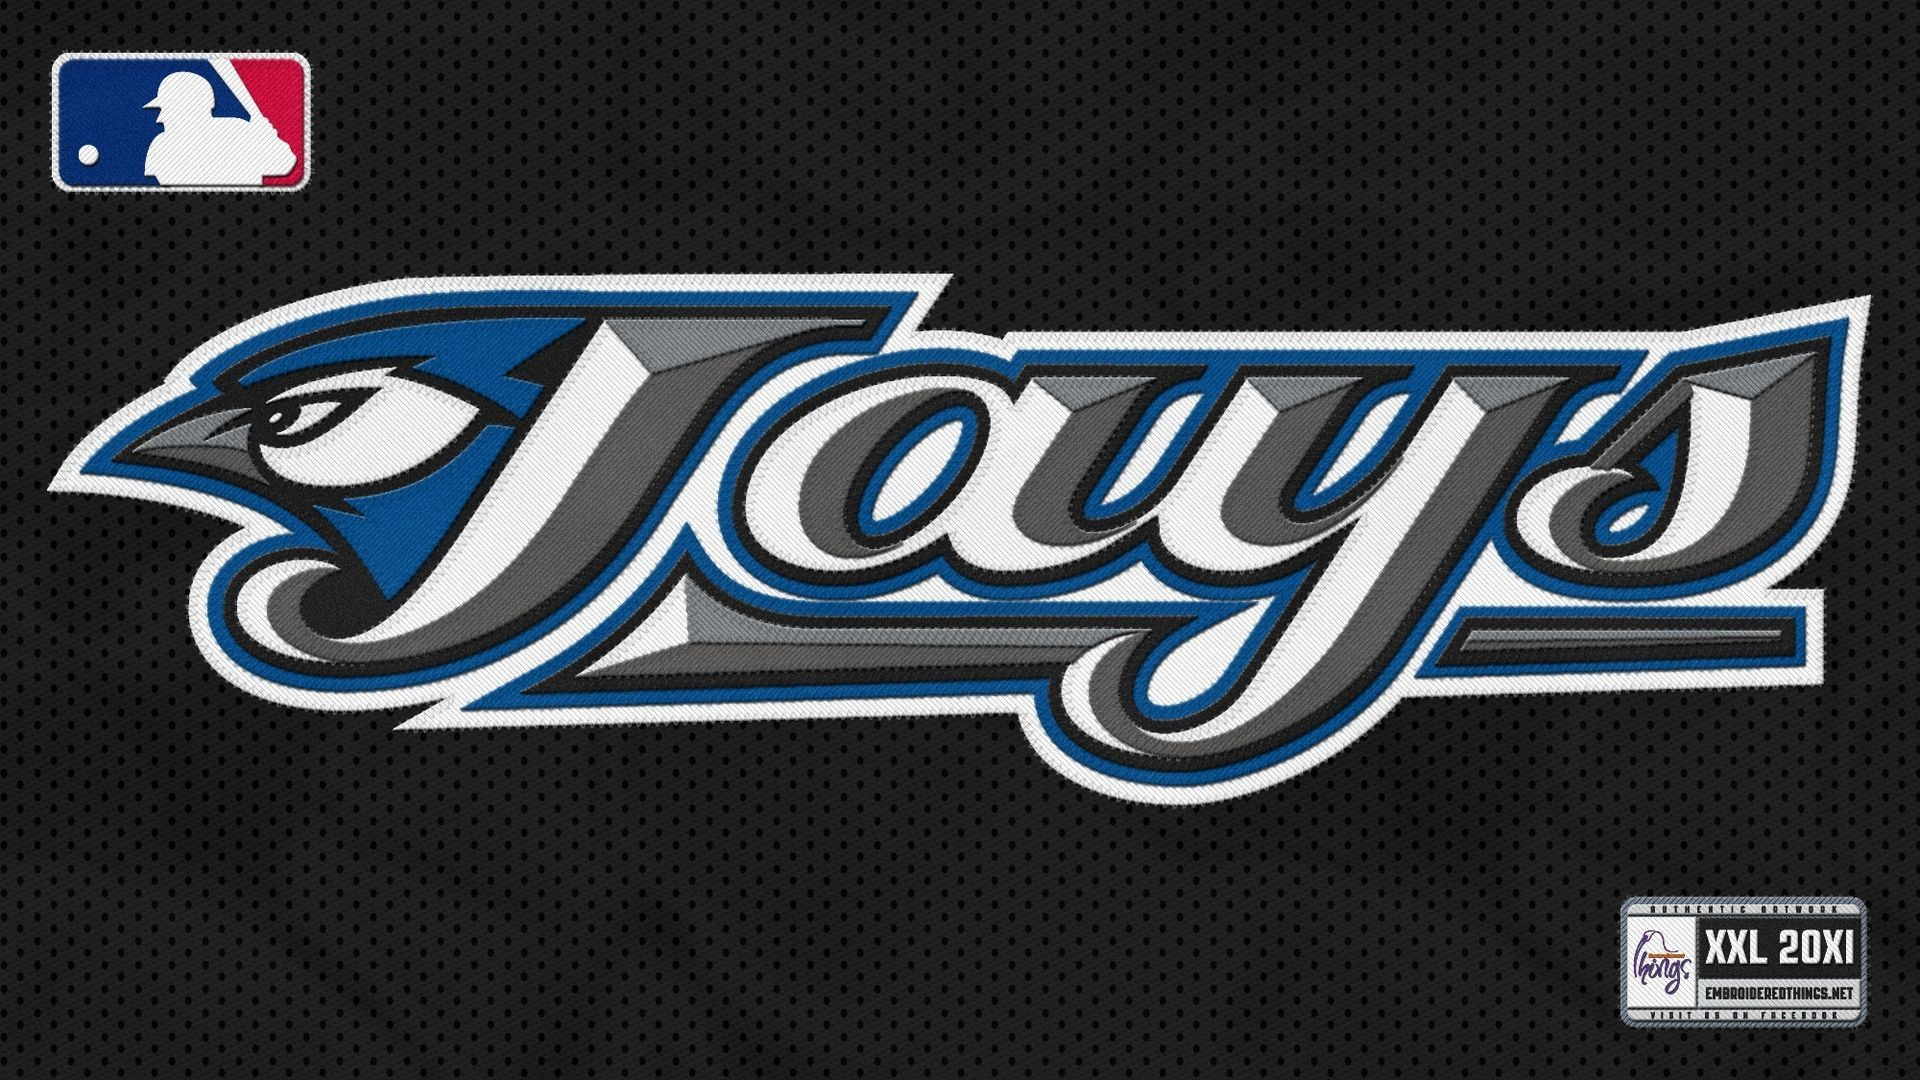 1920x1080 TORONTO BLUE JAYS mlb baseball (5) wallpaper | 1920x1080 | 228019 | WallpaperUP